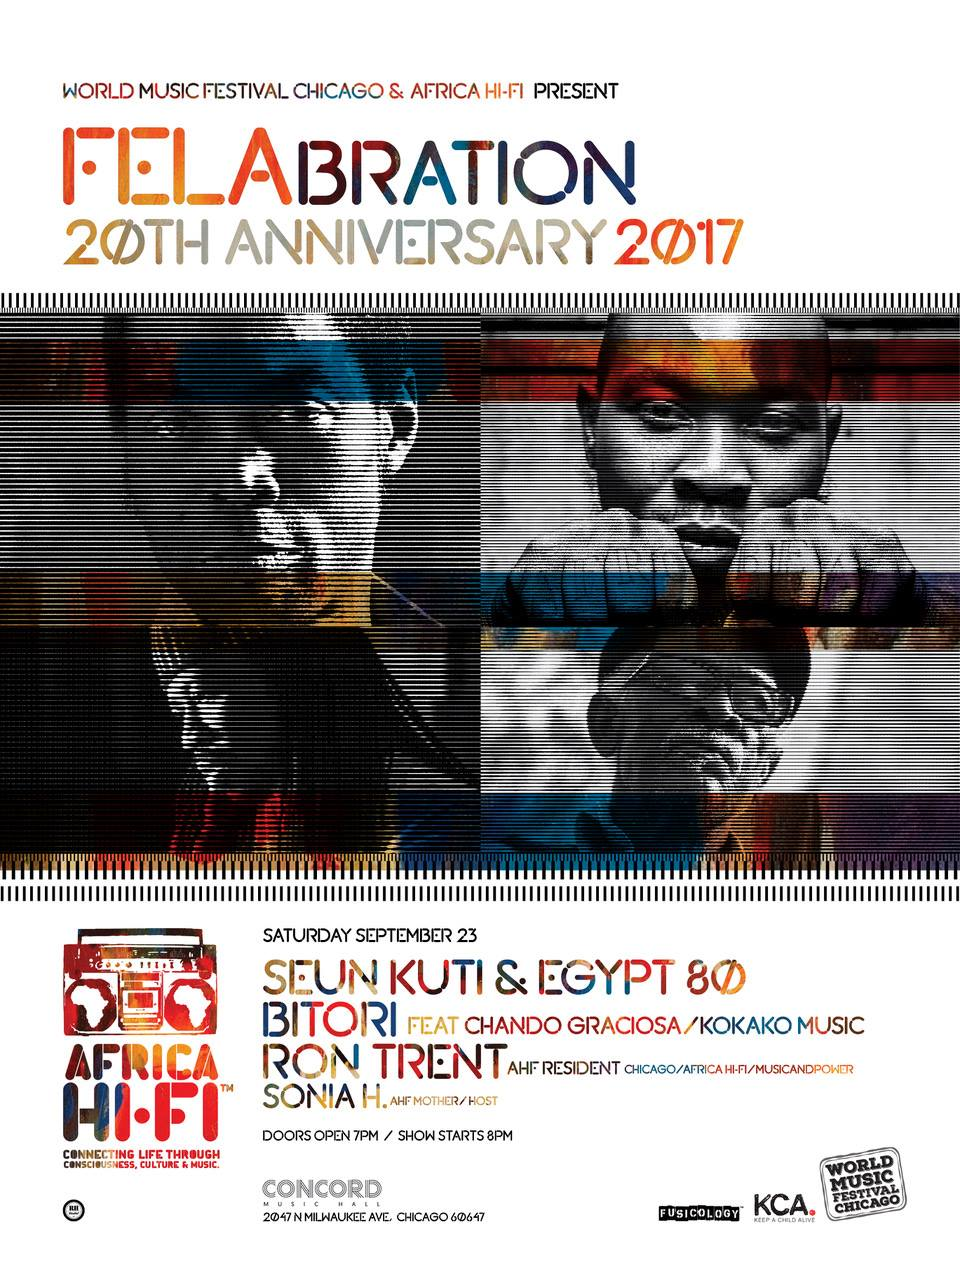 Felabration 20th Anniversary with Africa HiFi, Seun Kuti, Egypt 80 and Bitori 2017 Chicago Concord Music Hall